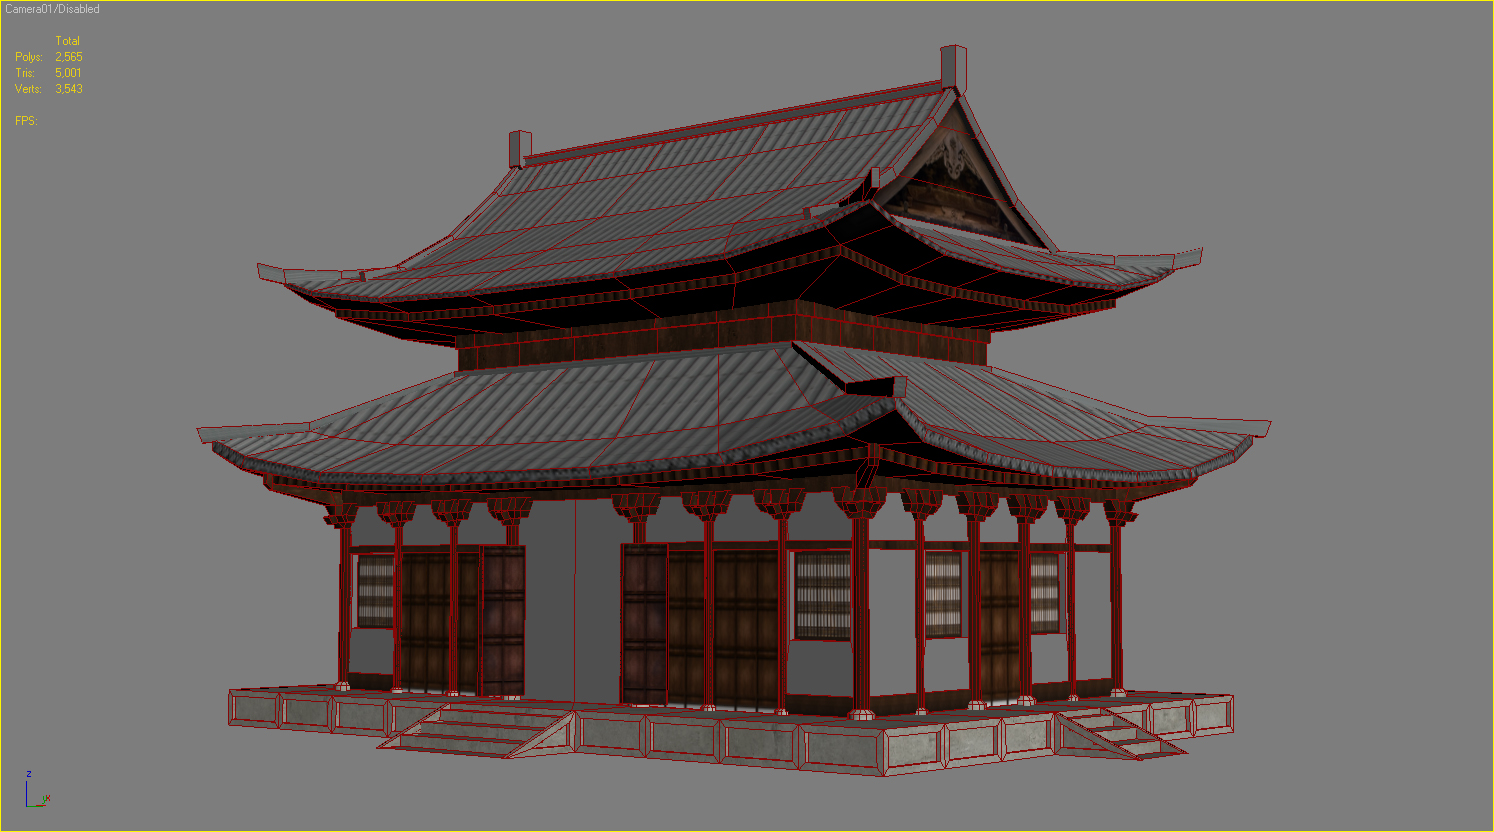 Game Of The Year >> Japanese Temple - Tofukuji Hondo - Ivan Ivanov